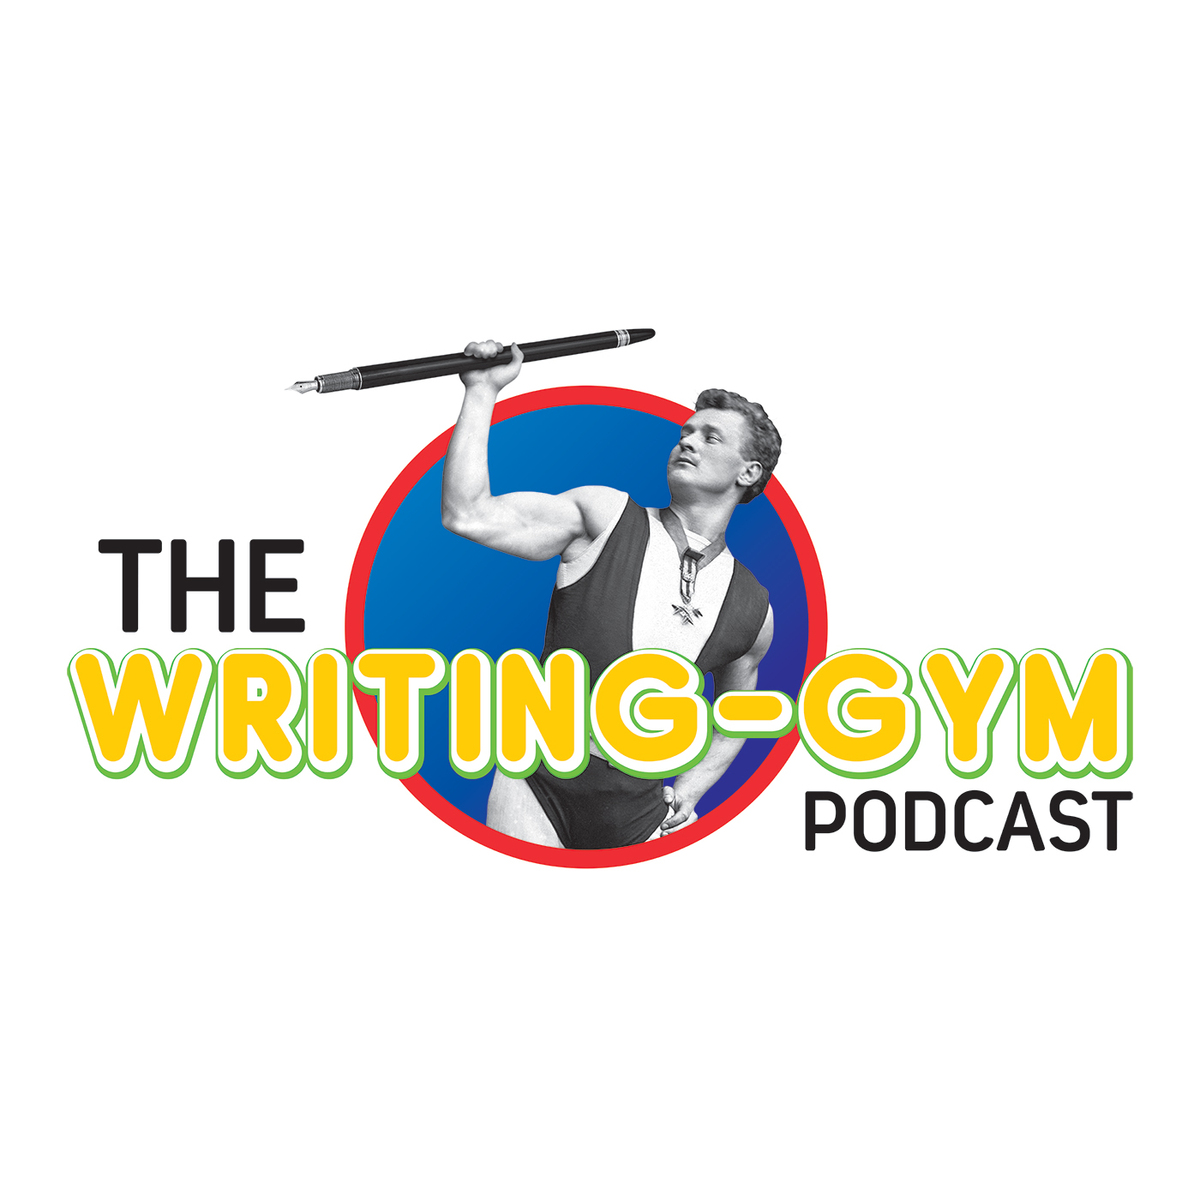 Ep. 143: A Writers Worst Enemy | Annalisa Parent